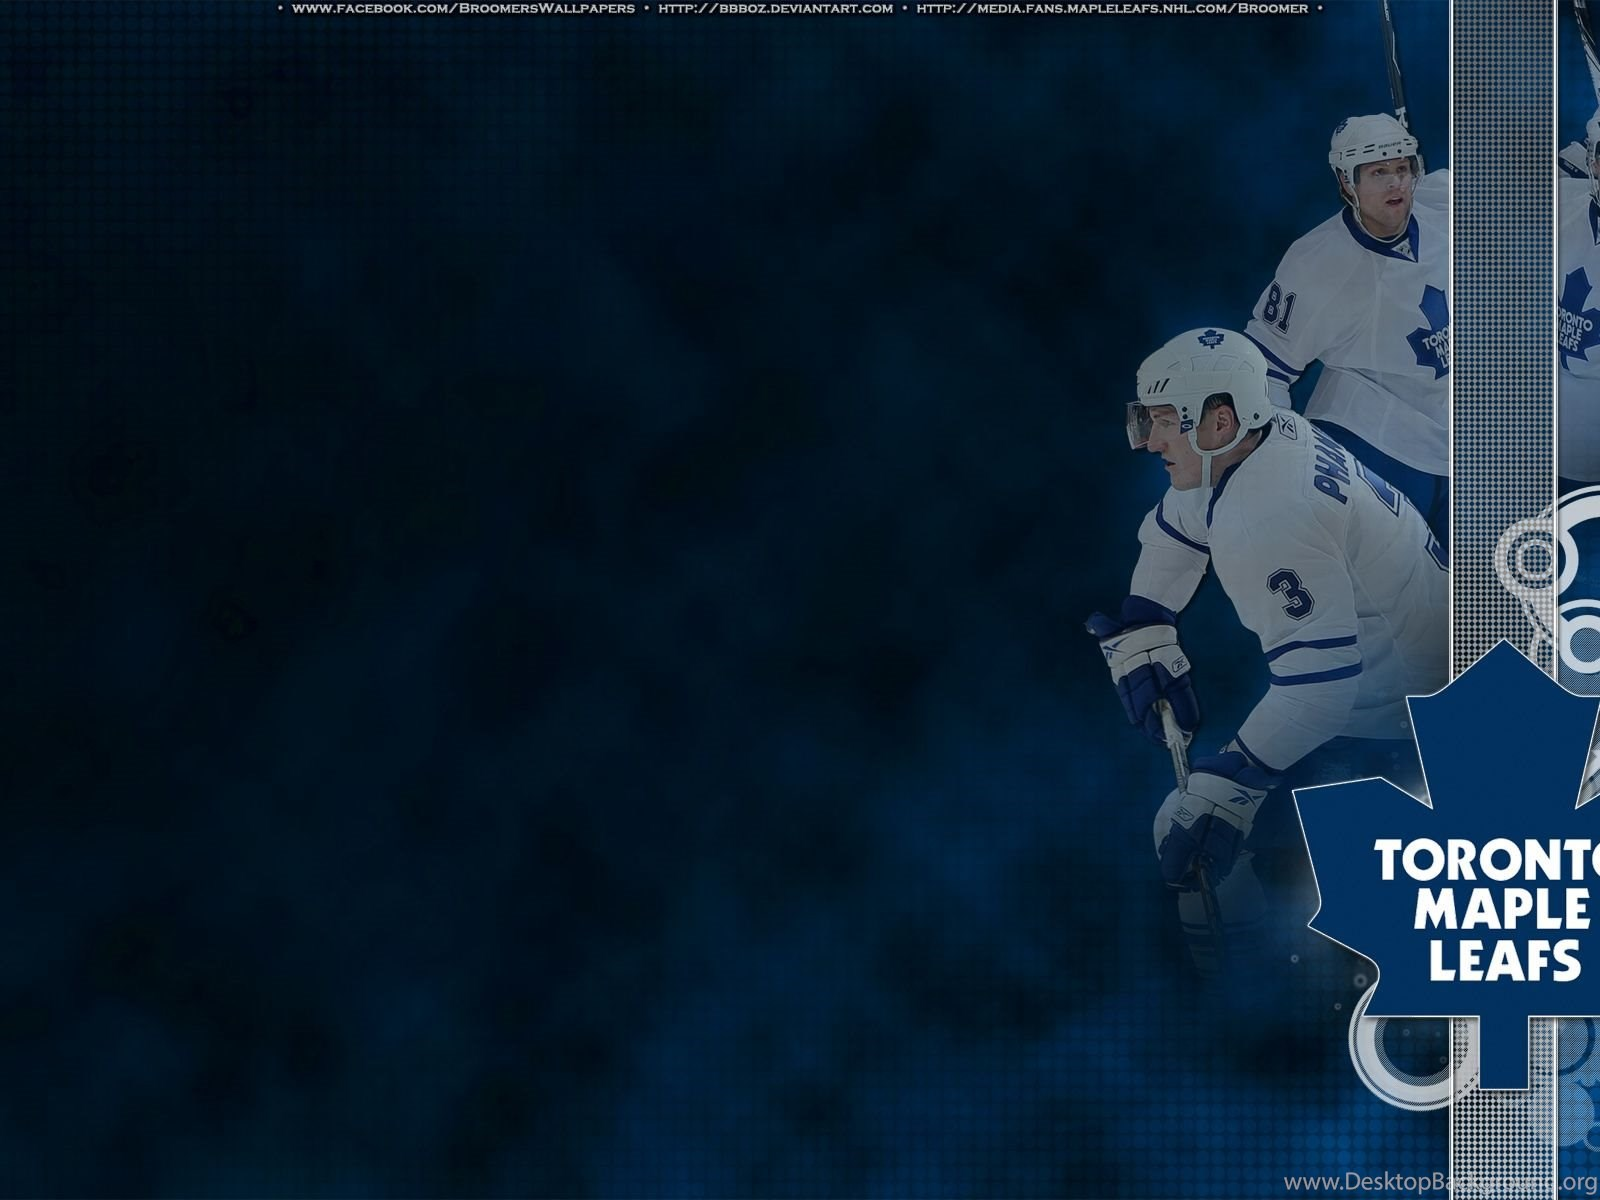 Toronto Maple Leafs Hd Wallpapers Desktop Background